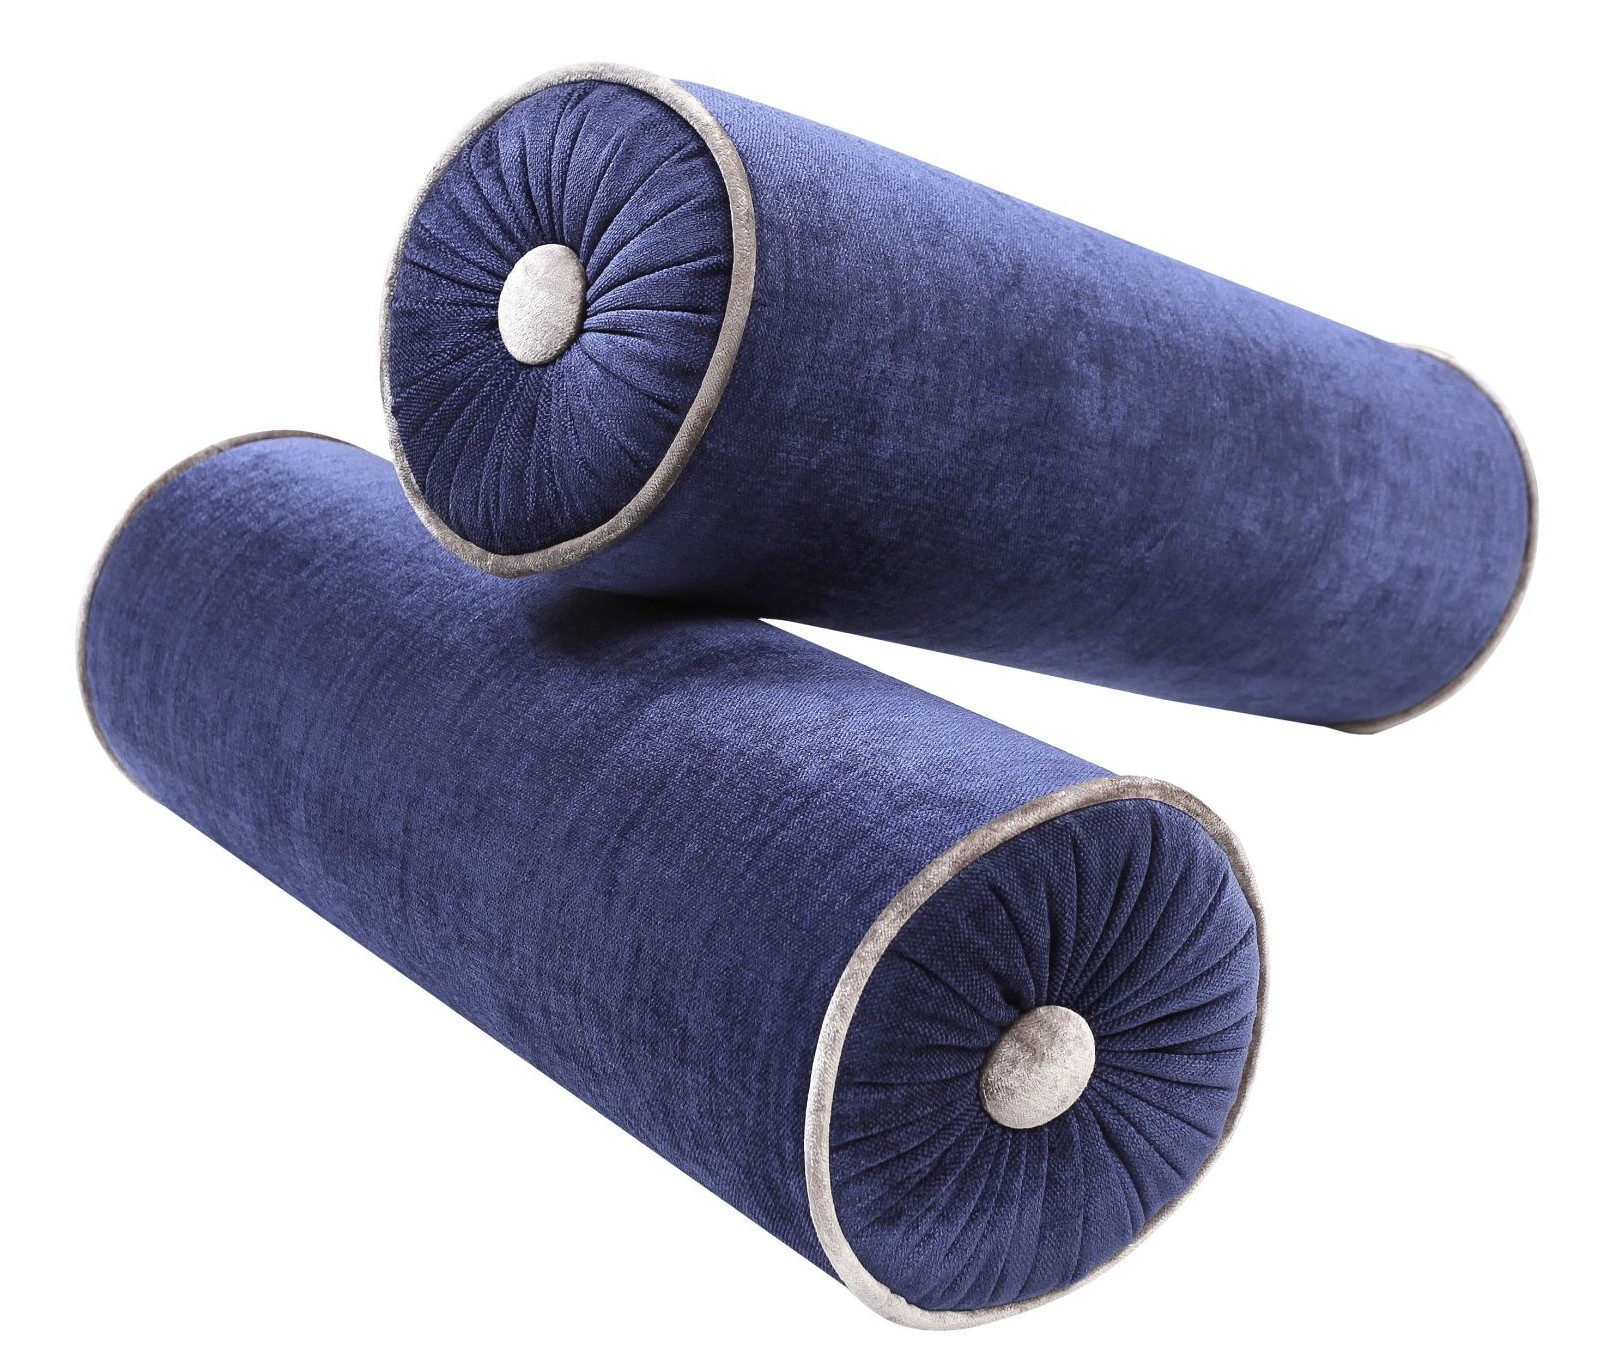 Dream Cushion rollers